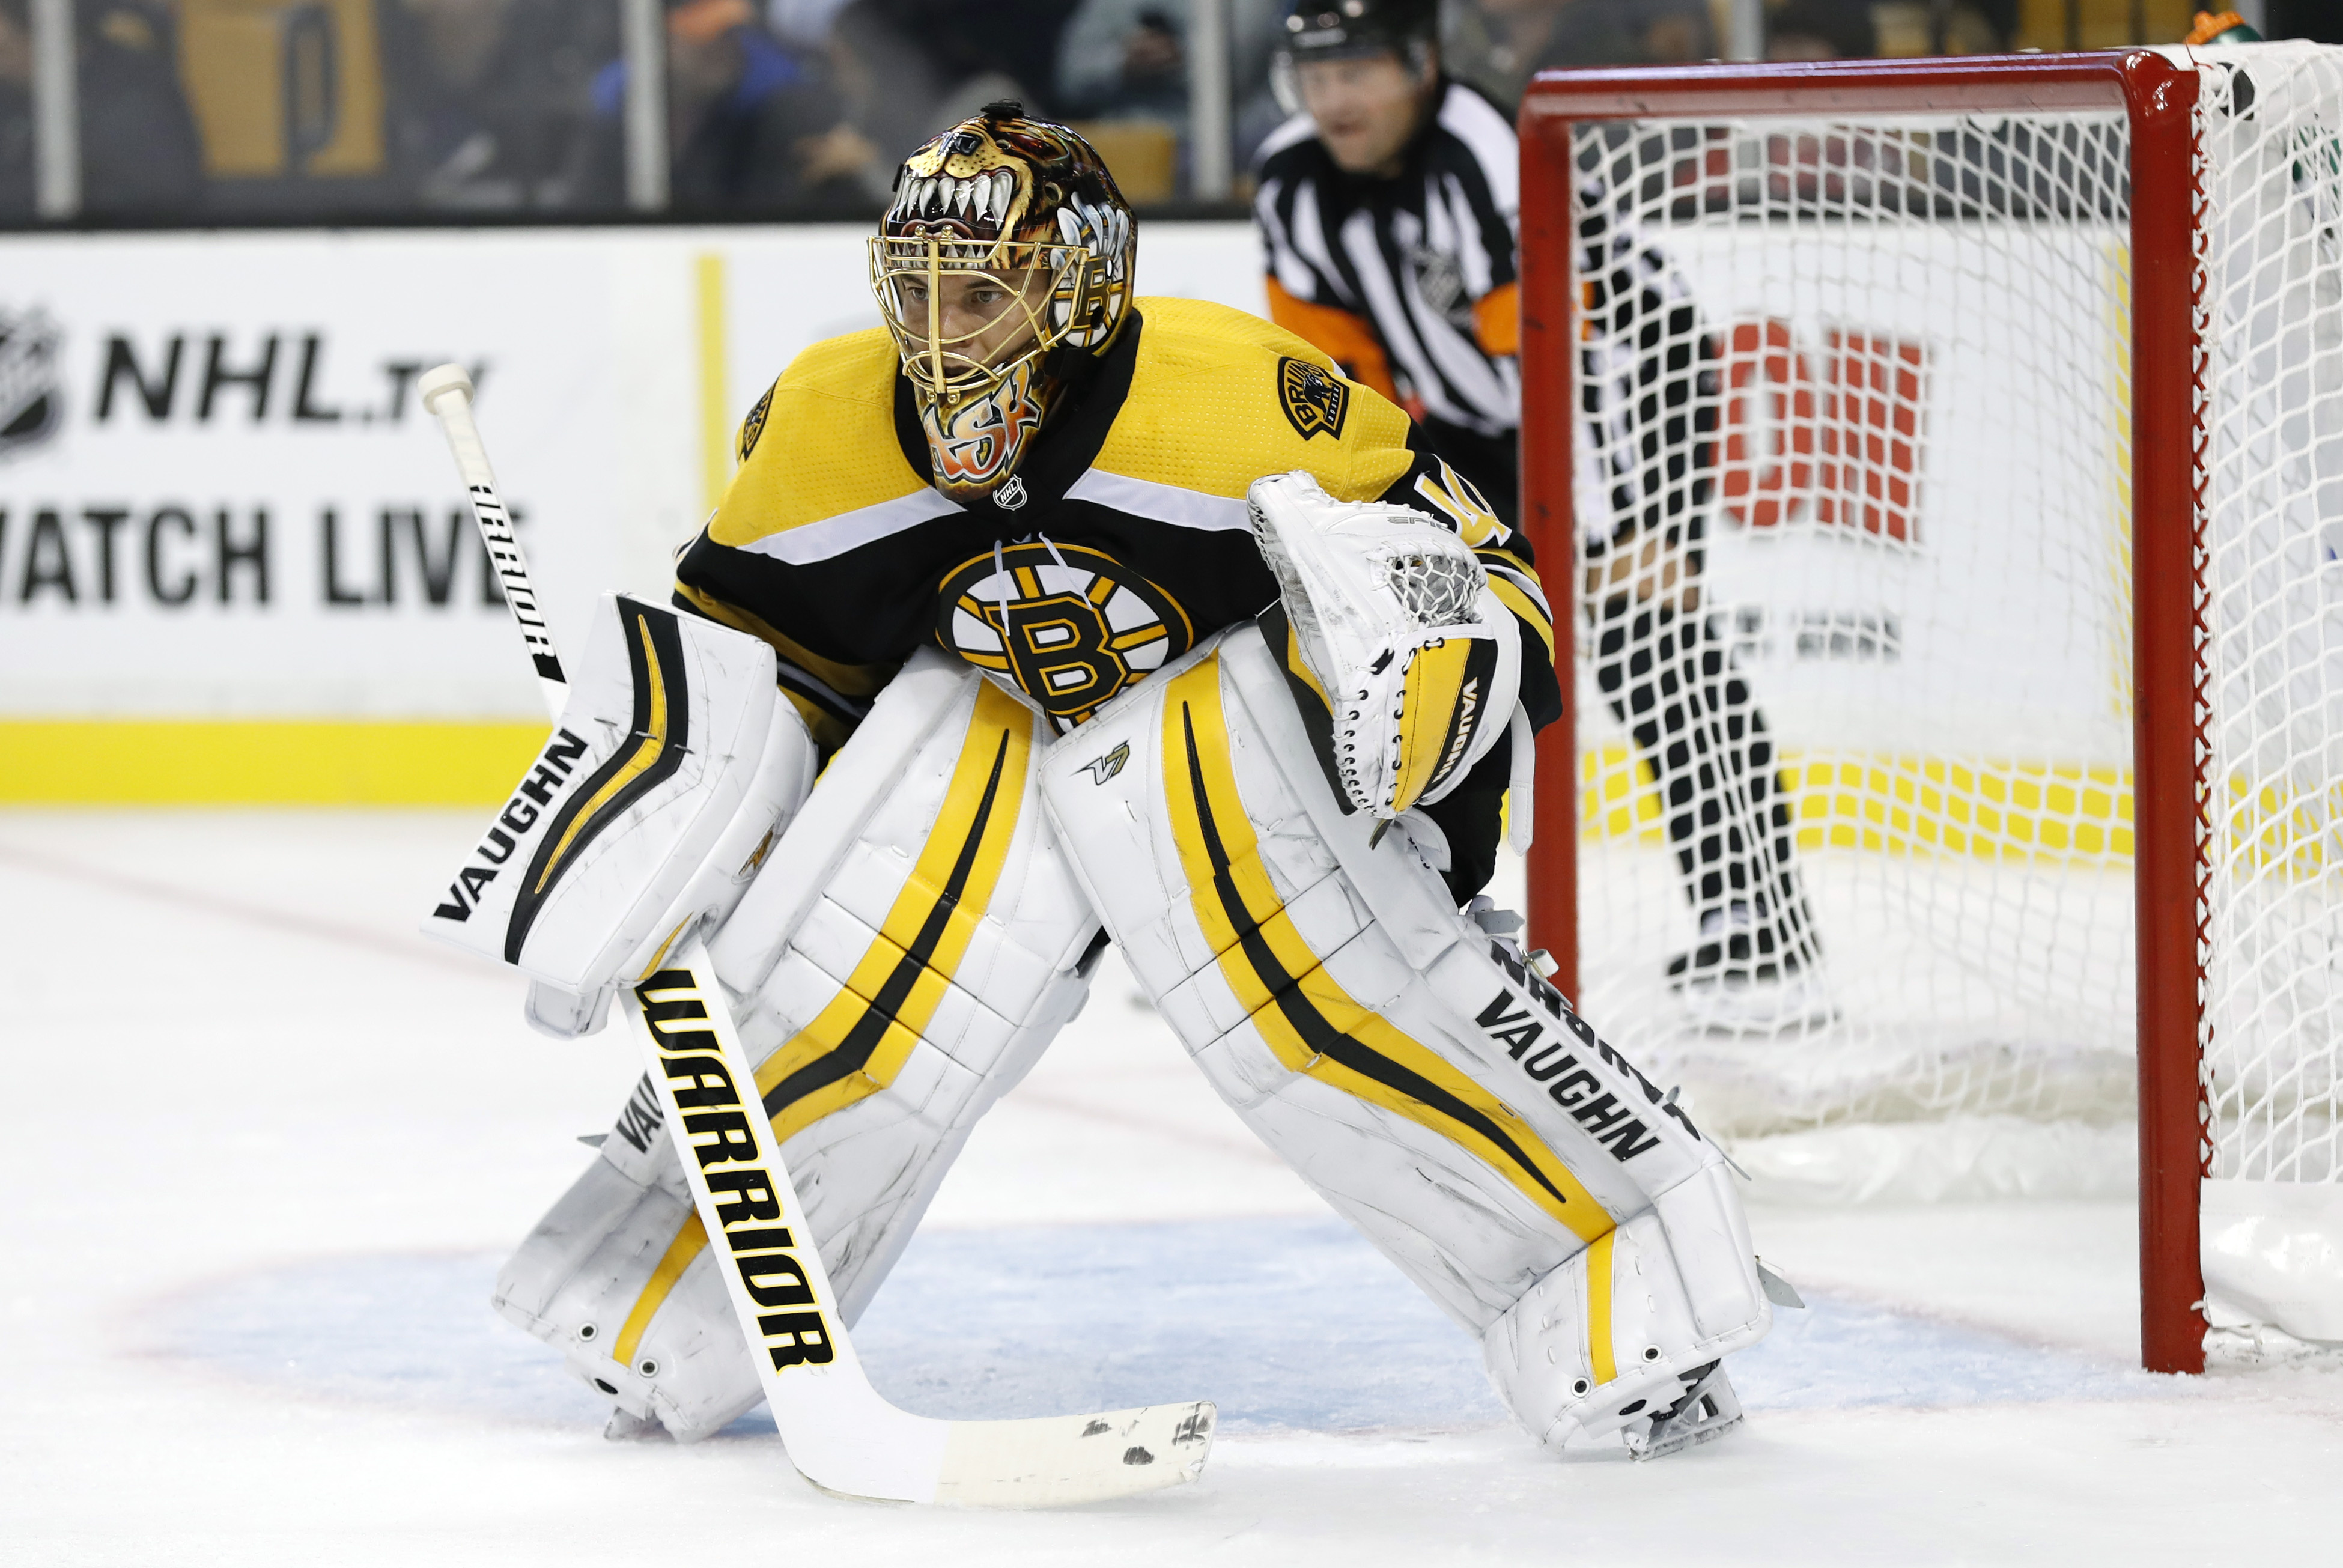 Bruins: Malcolm Subban claimed off waivers by Las Vegas